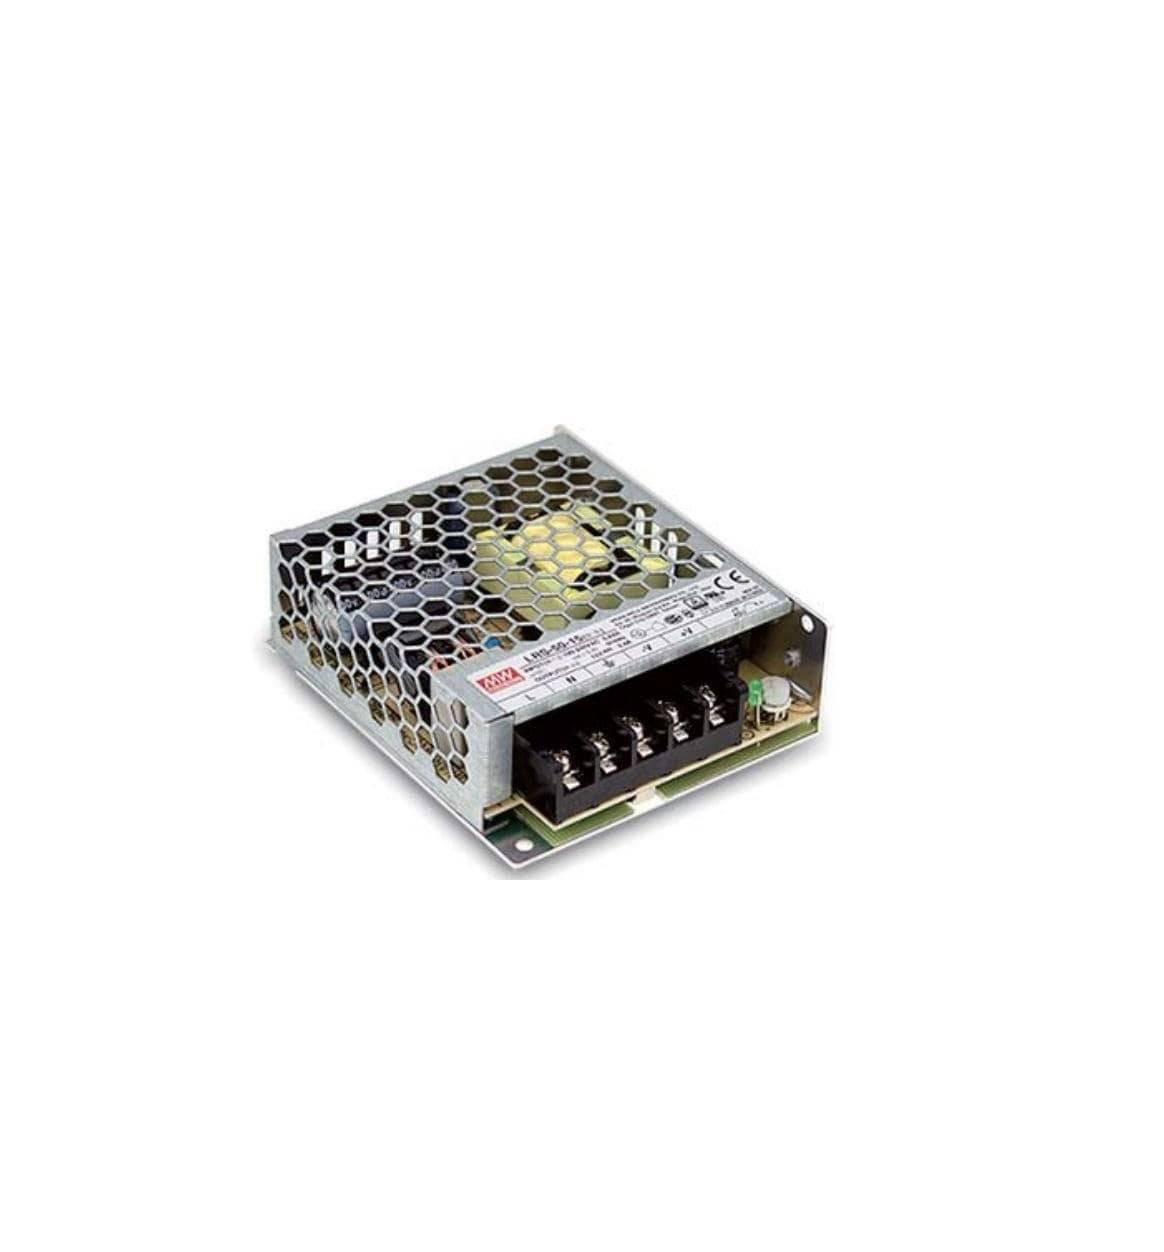 Sharvielectronics: Best Online Electronic Products Bangalore | LRS 50 12 Mean Well SMPS – 12V 4.2A – 50.4W Metal Power Supply | Electronic store in bangalore